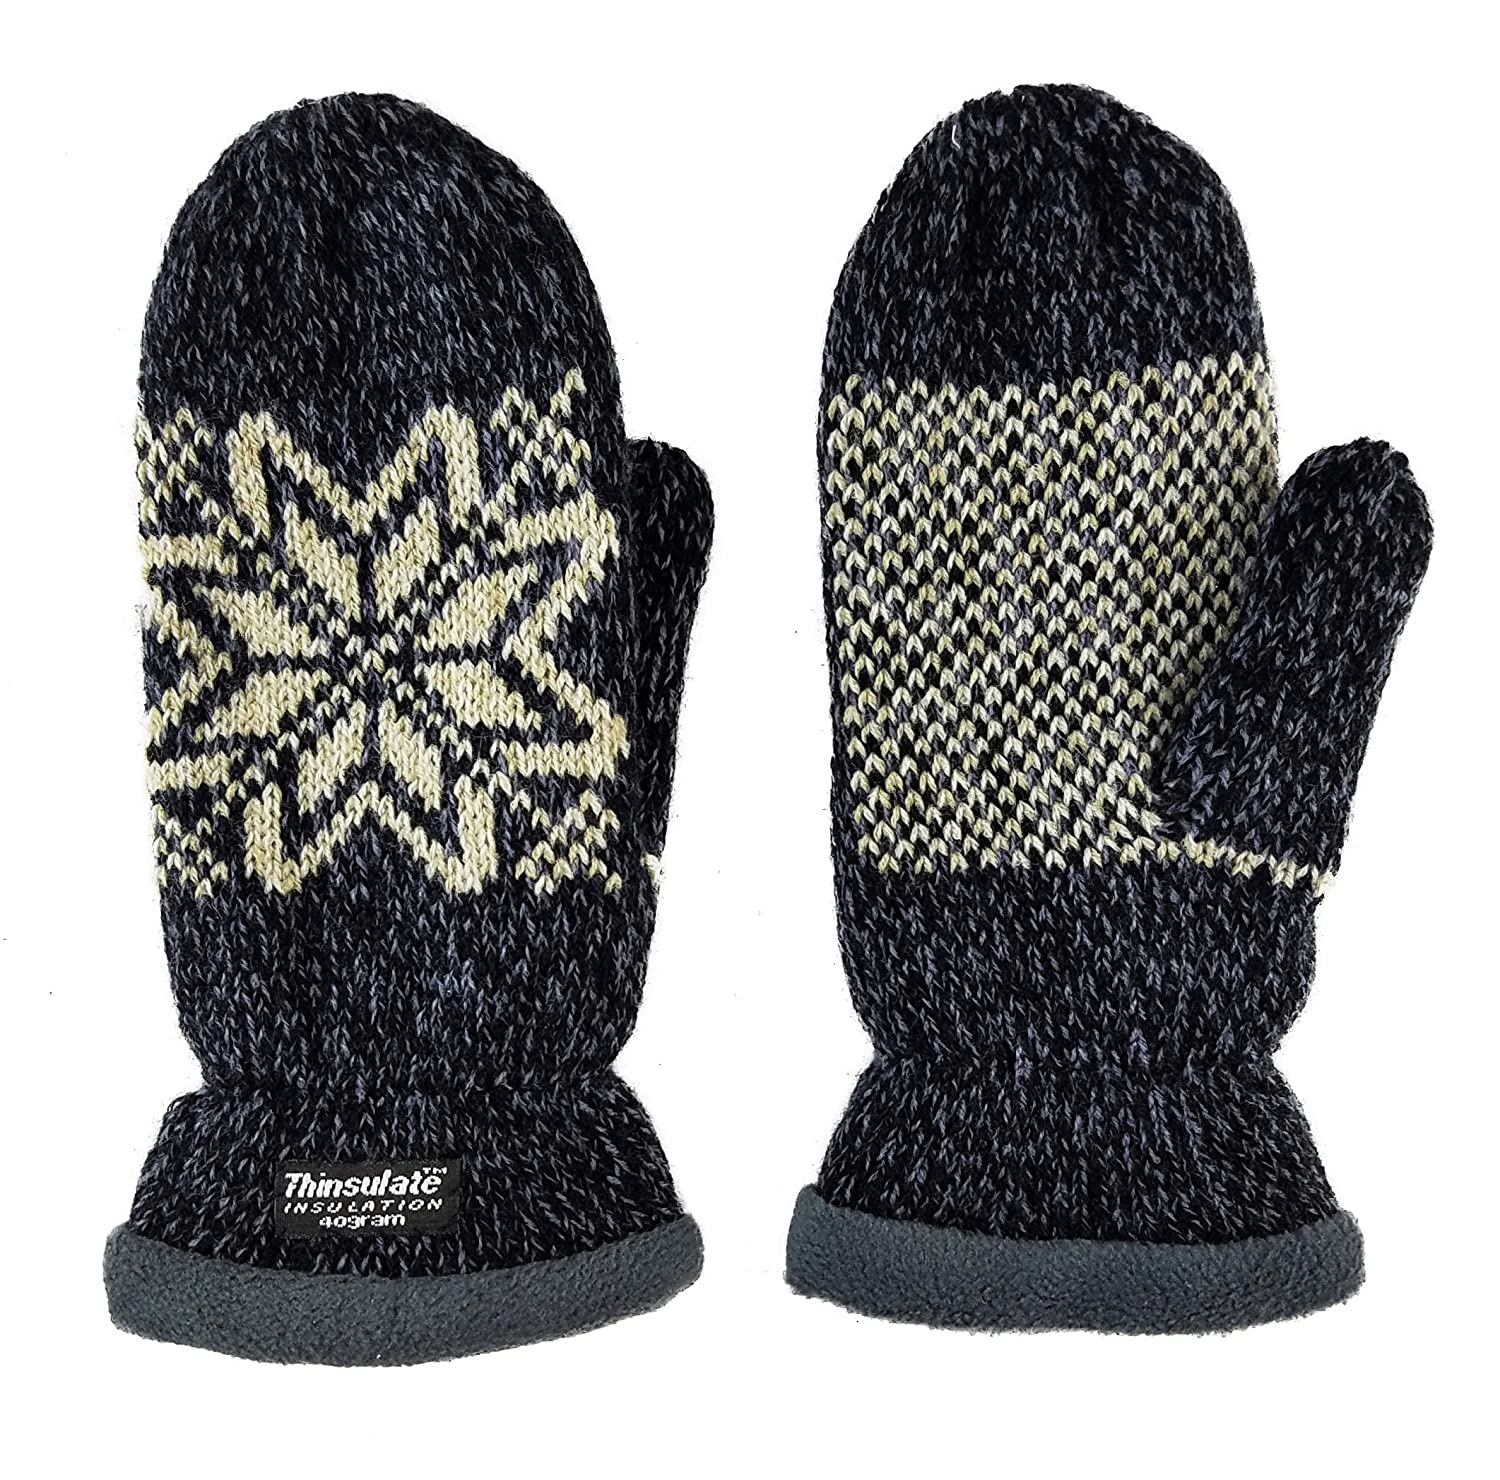 Bruceriver Women Snowflake Knit Mittens with Warm Thinsulate Fleece Lining Size S (Black) HESHI BR16G102-Black Size S